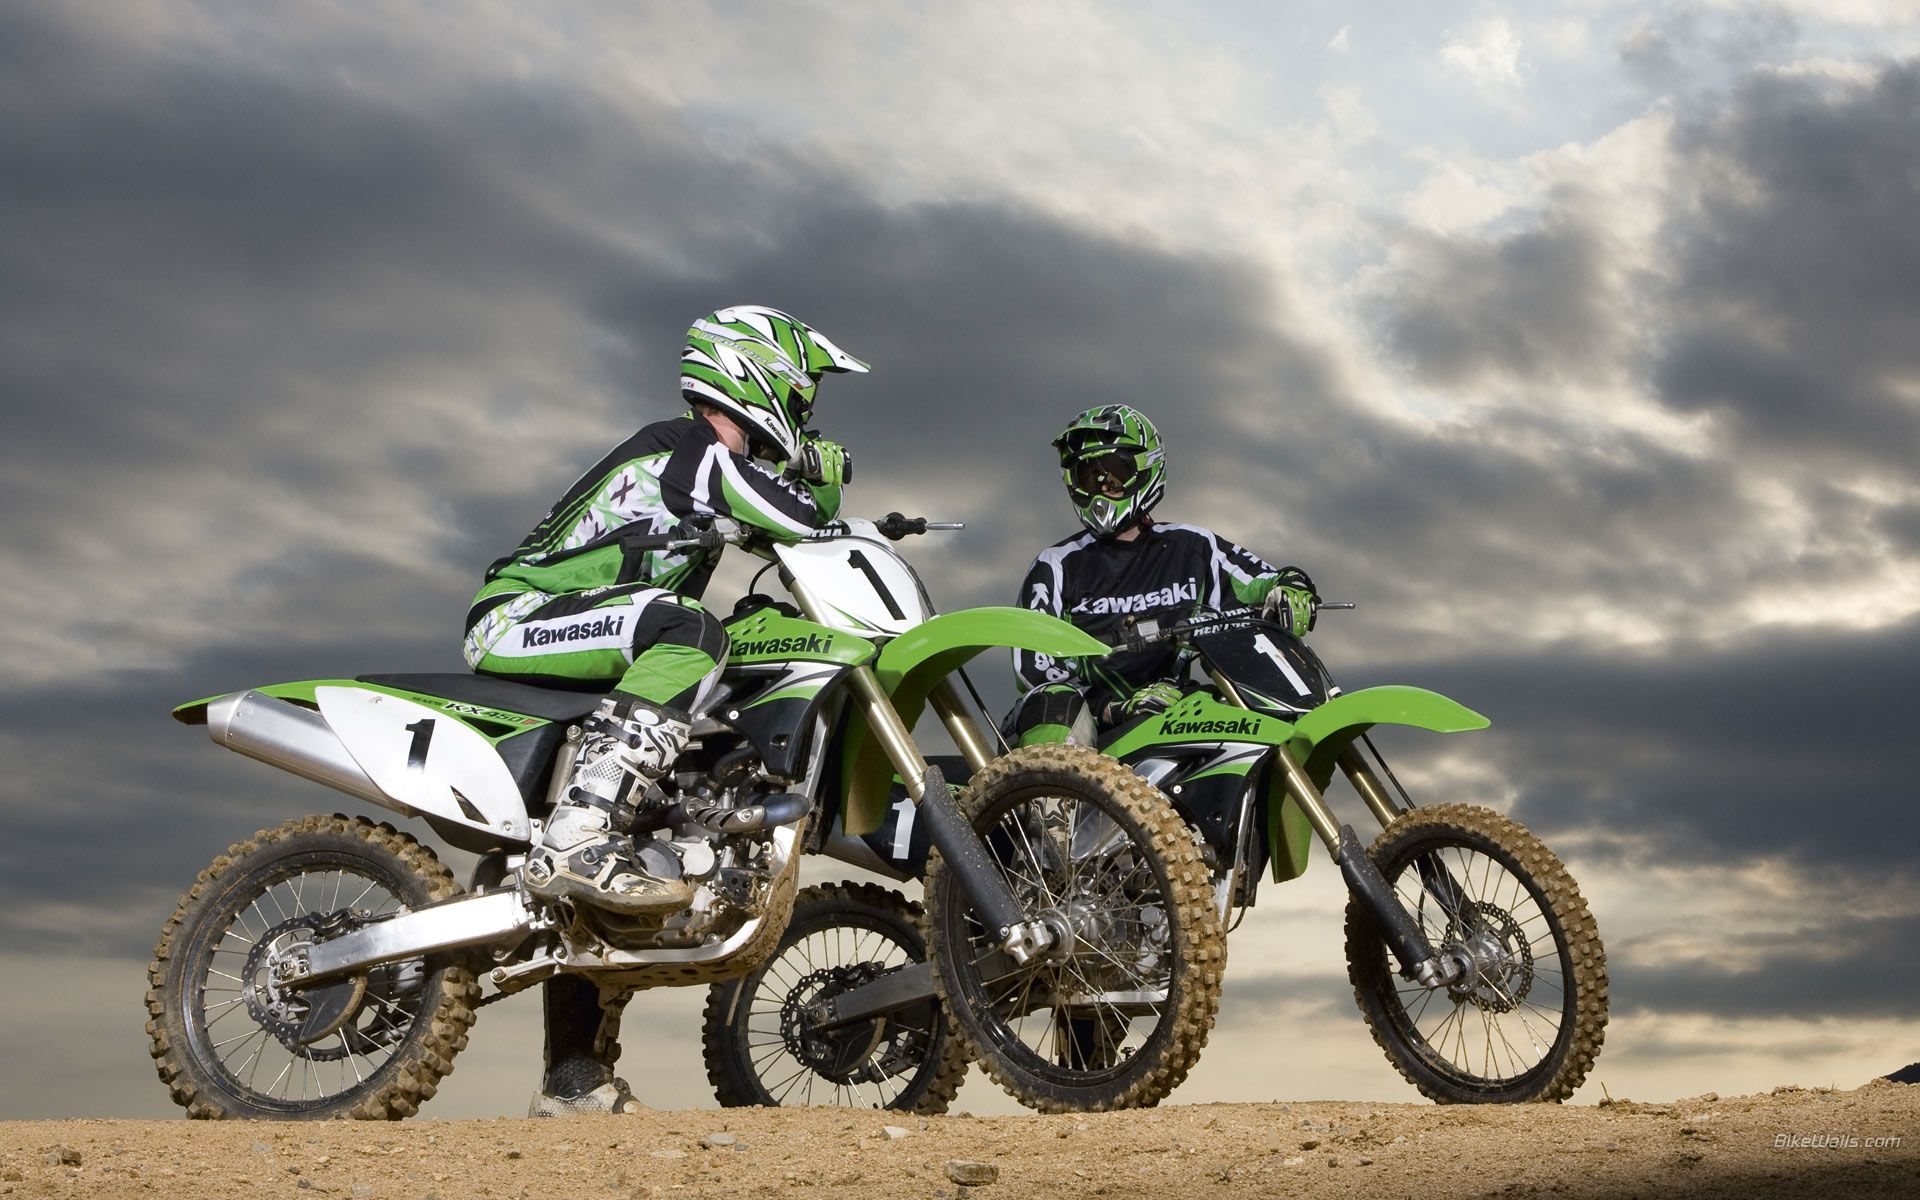 Kawasaki Picture Motocross Kxf Moto Motorcycle Wallpaper